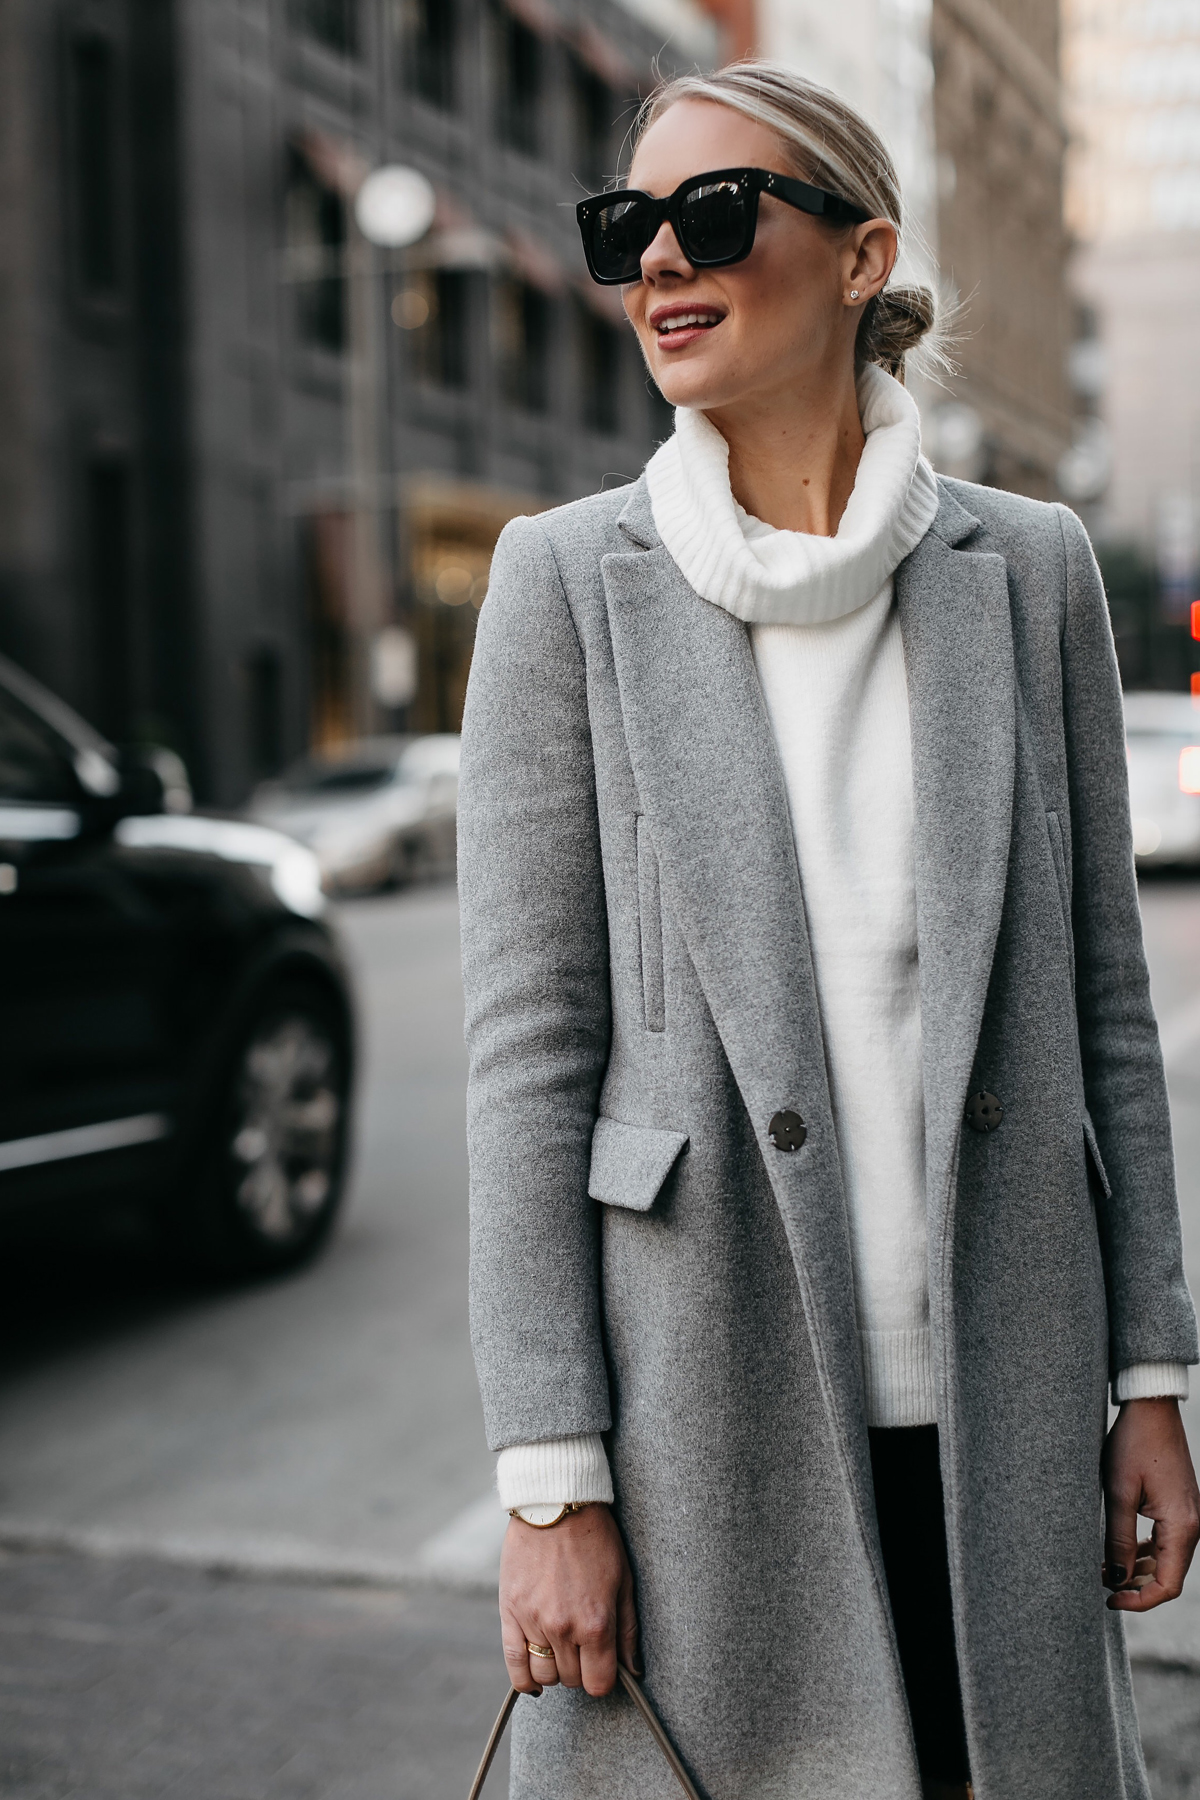 Blonde Woman Wearing Grey Wool Coat White Turtleneck Sweater Fashion Jackson Dallas Blogger Fashion Blogger Street Style